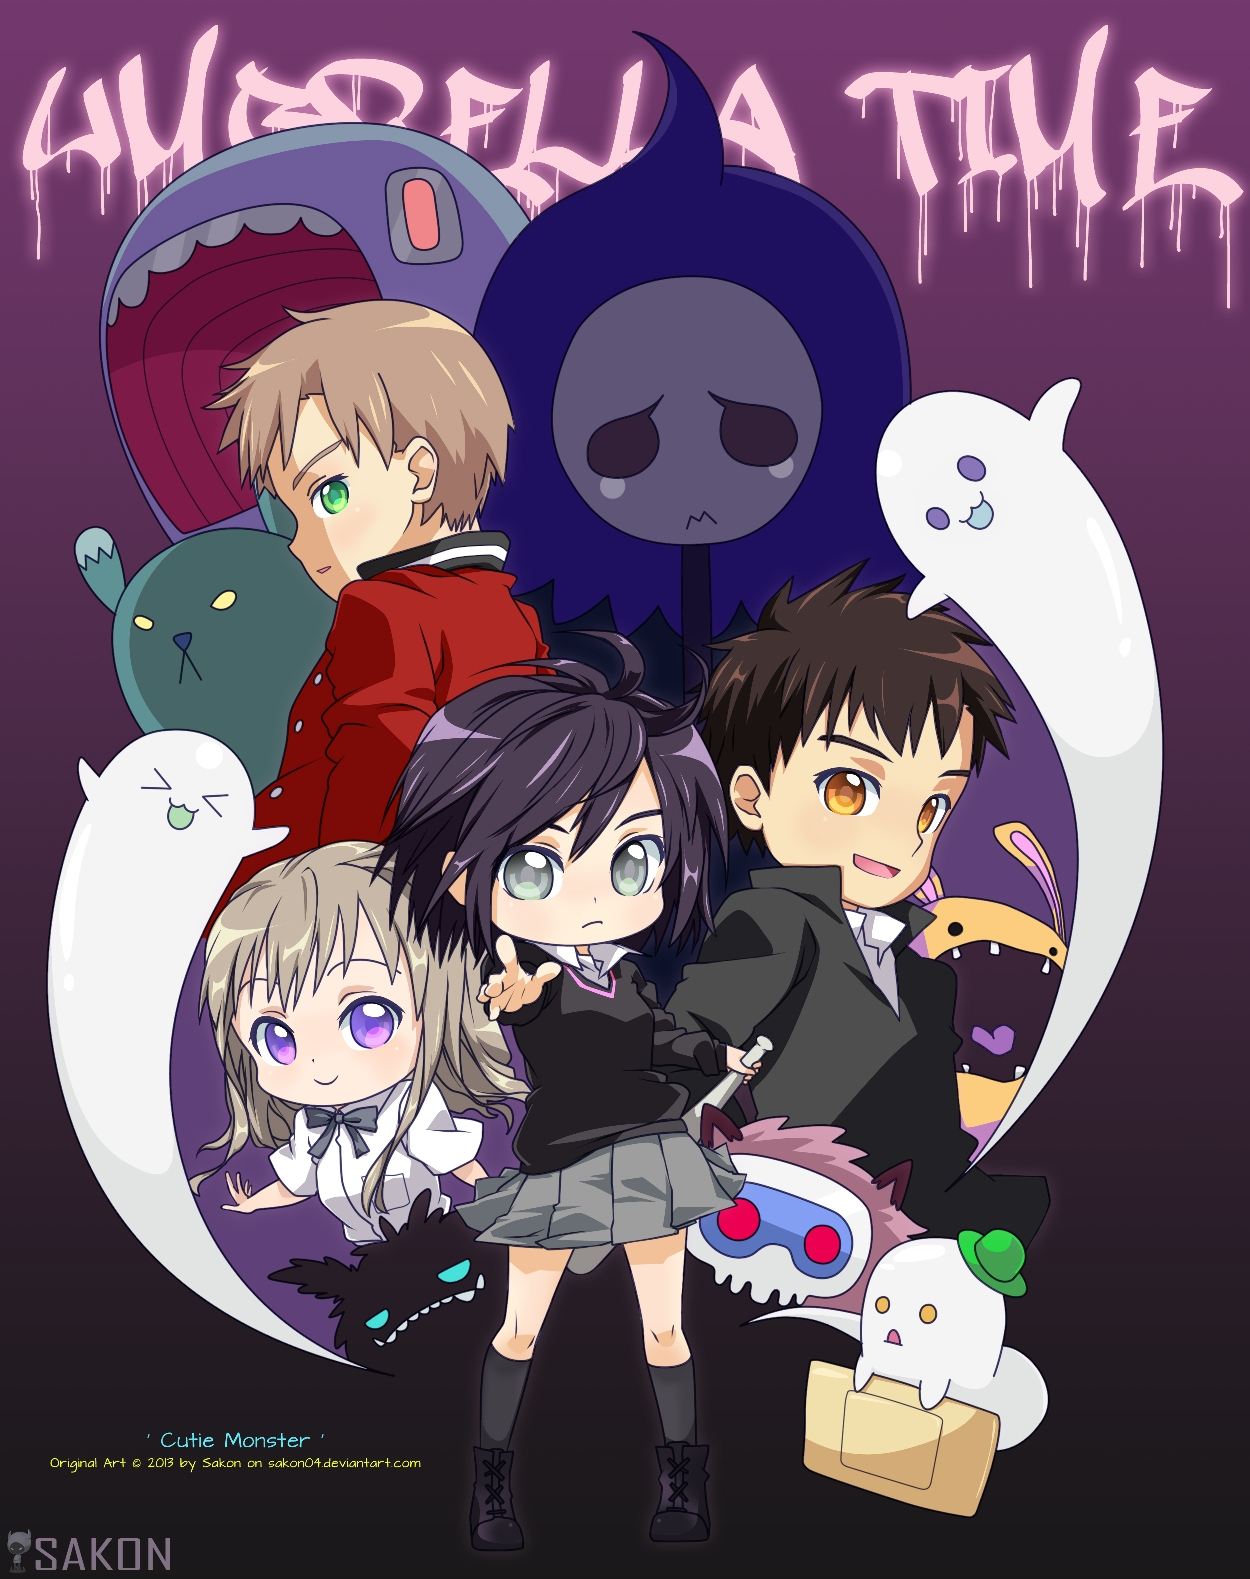 Cutie Monster by Sakon04